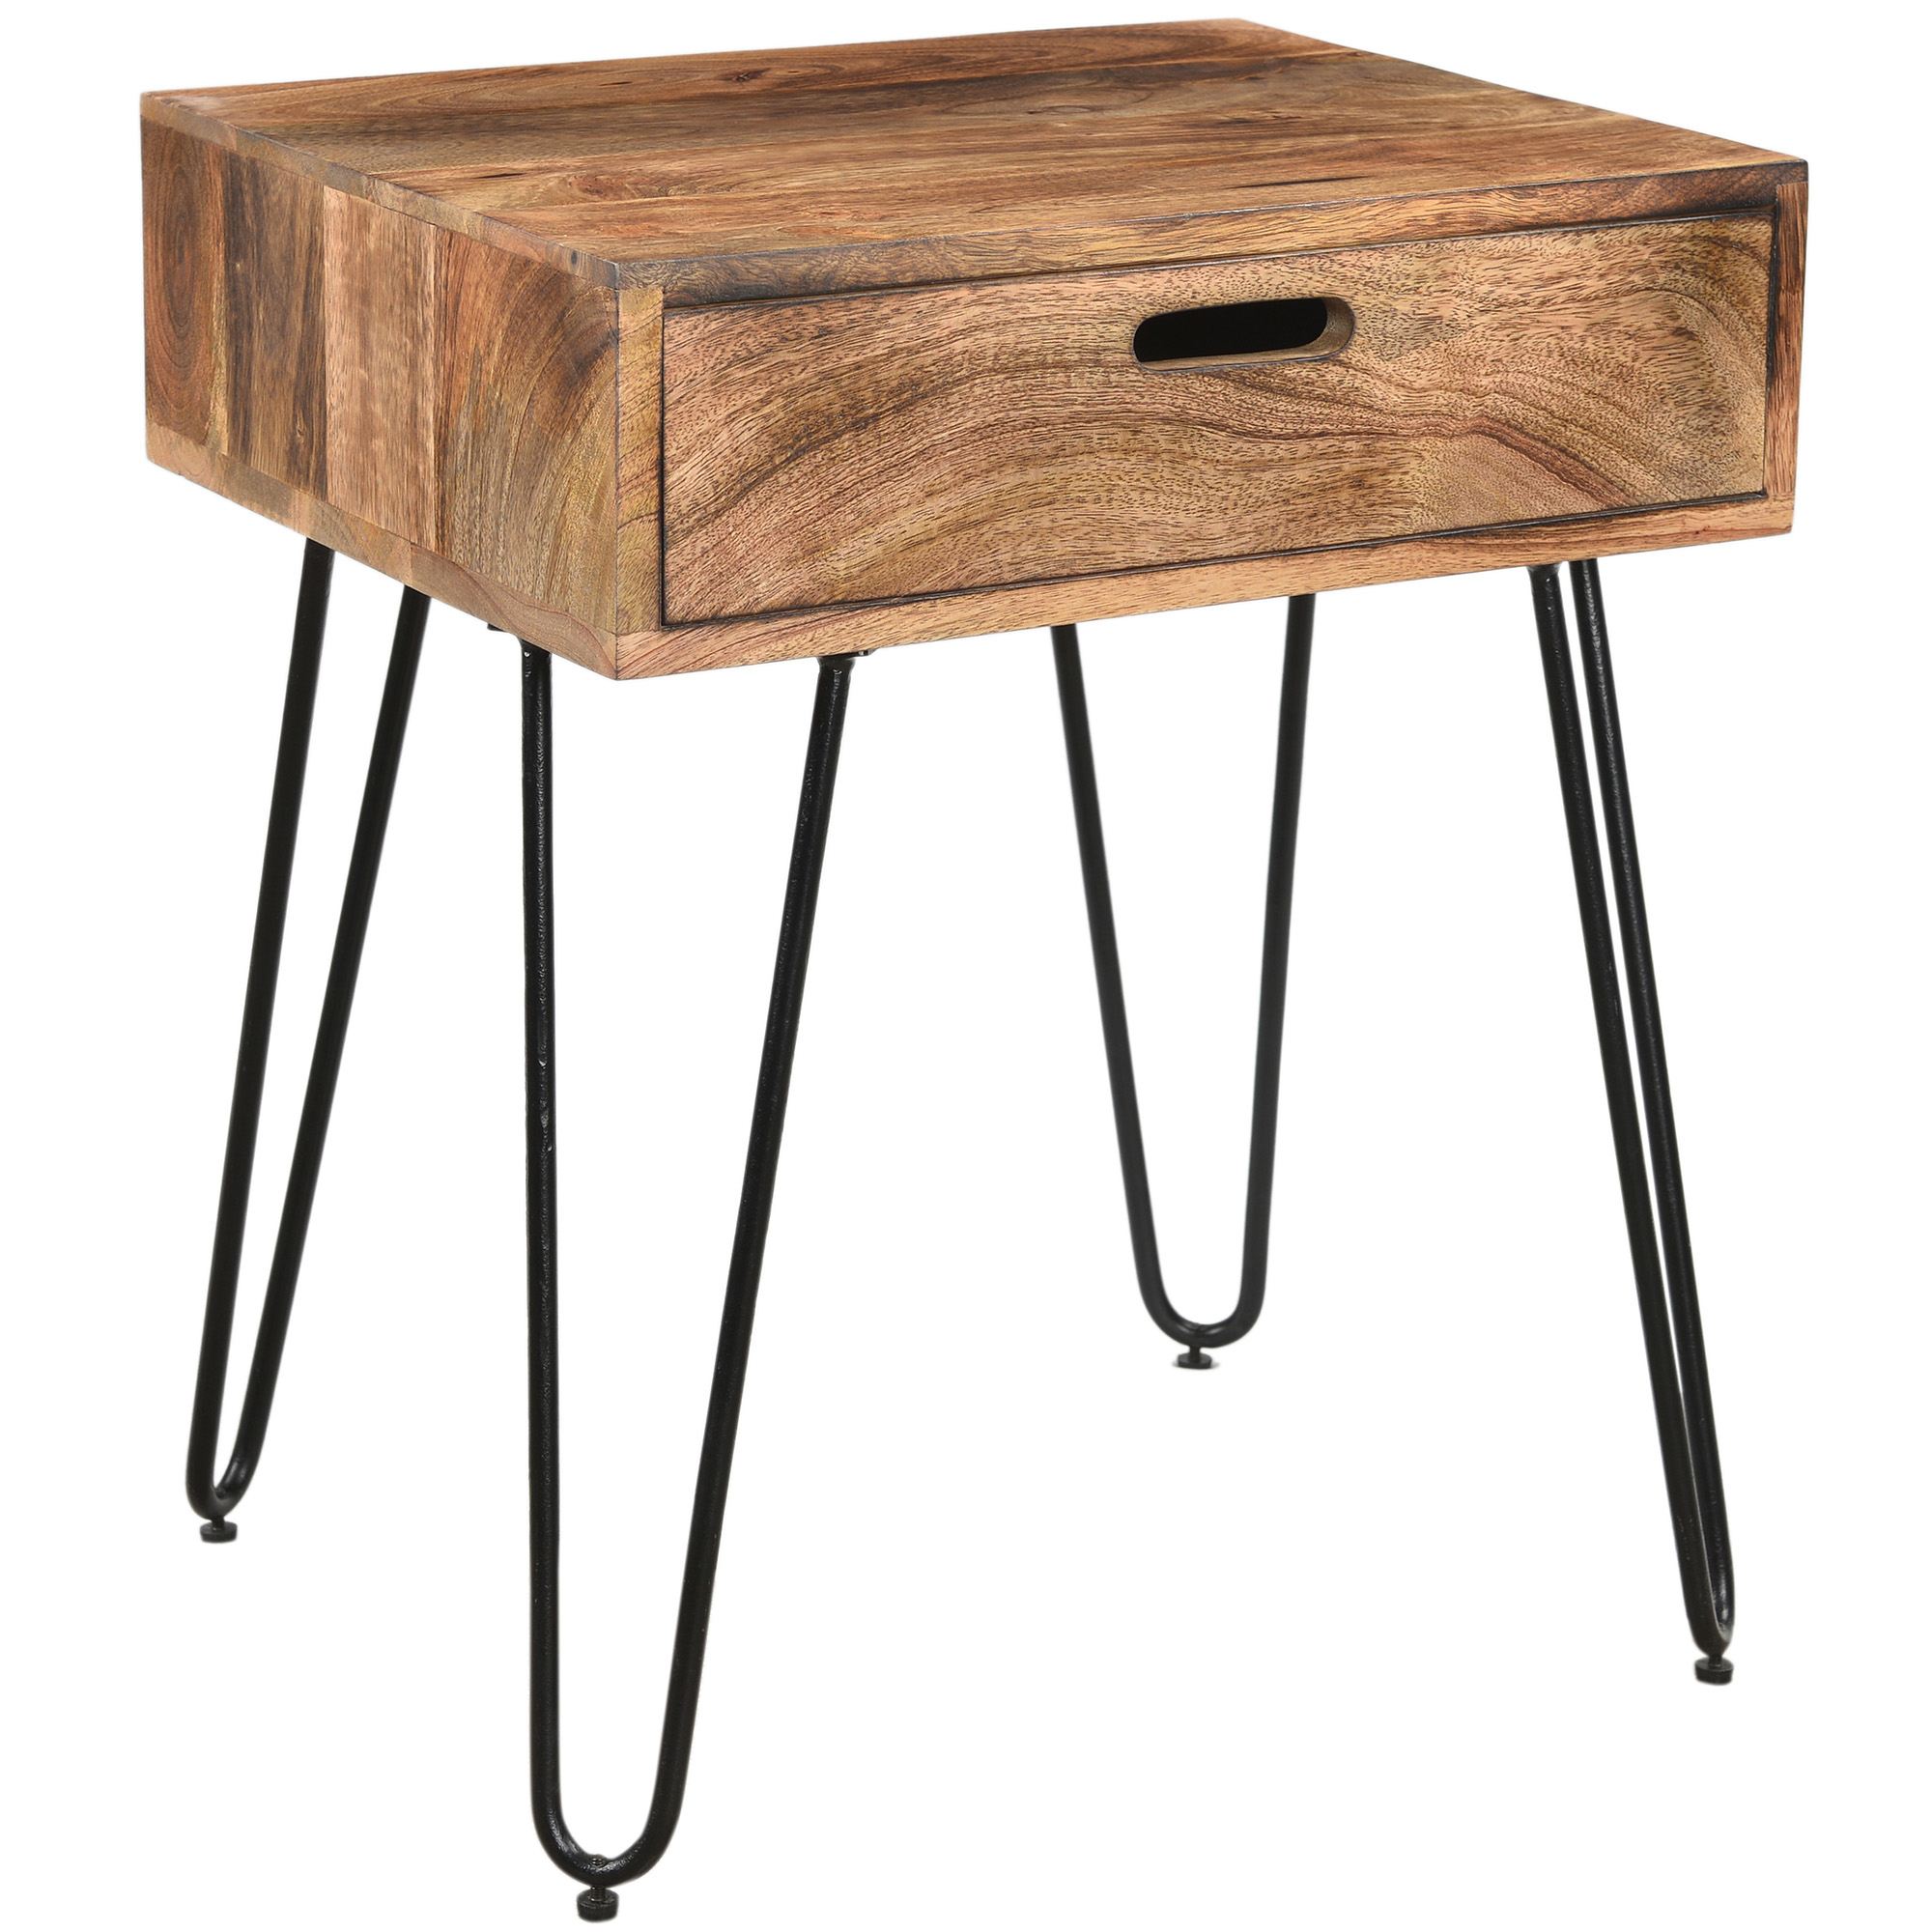 Rustic Industrial Solid Wood & Iron Accent Table in Natural Burnt